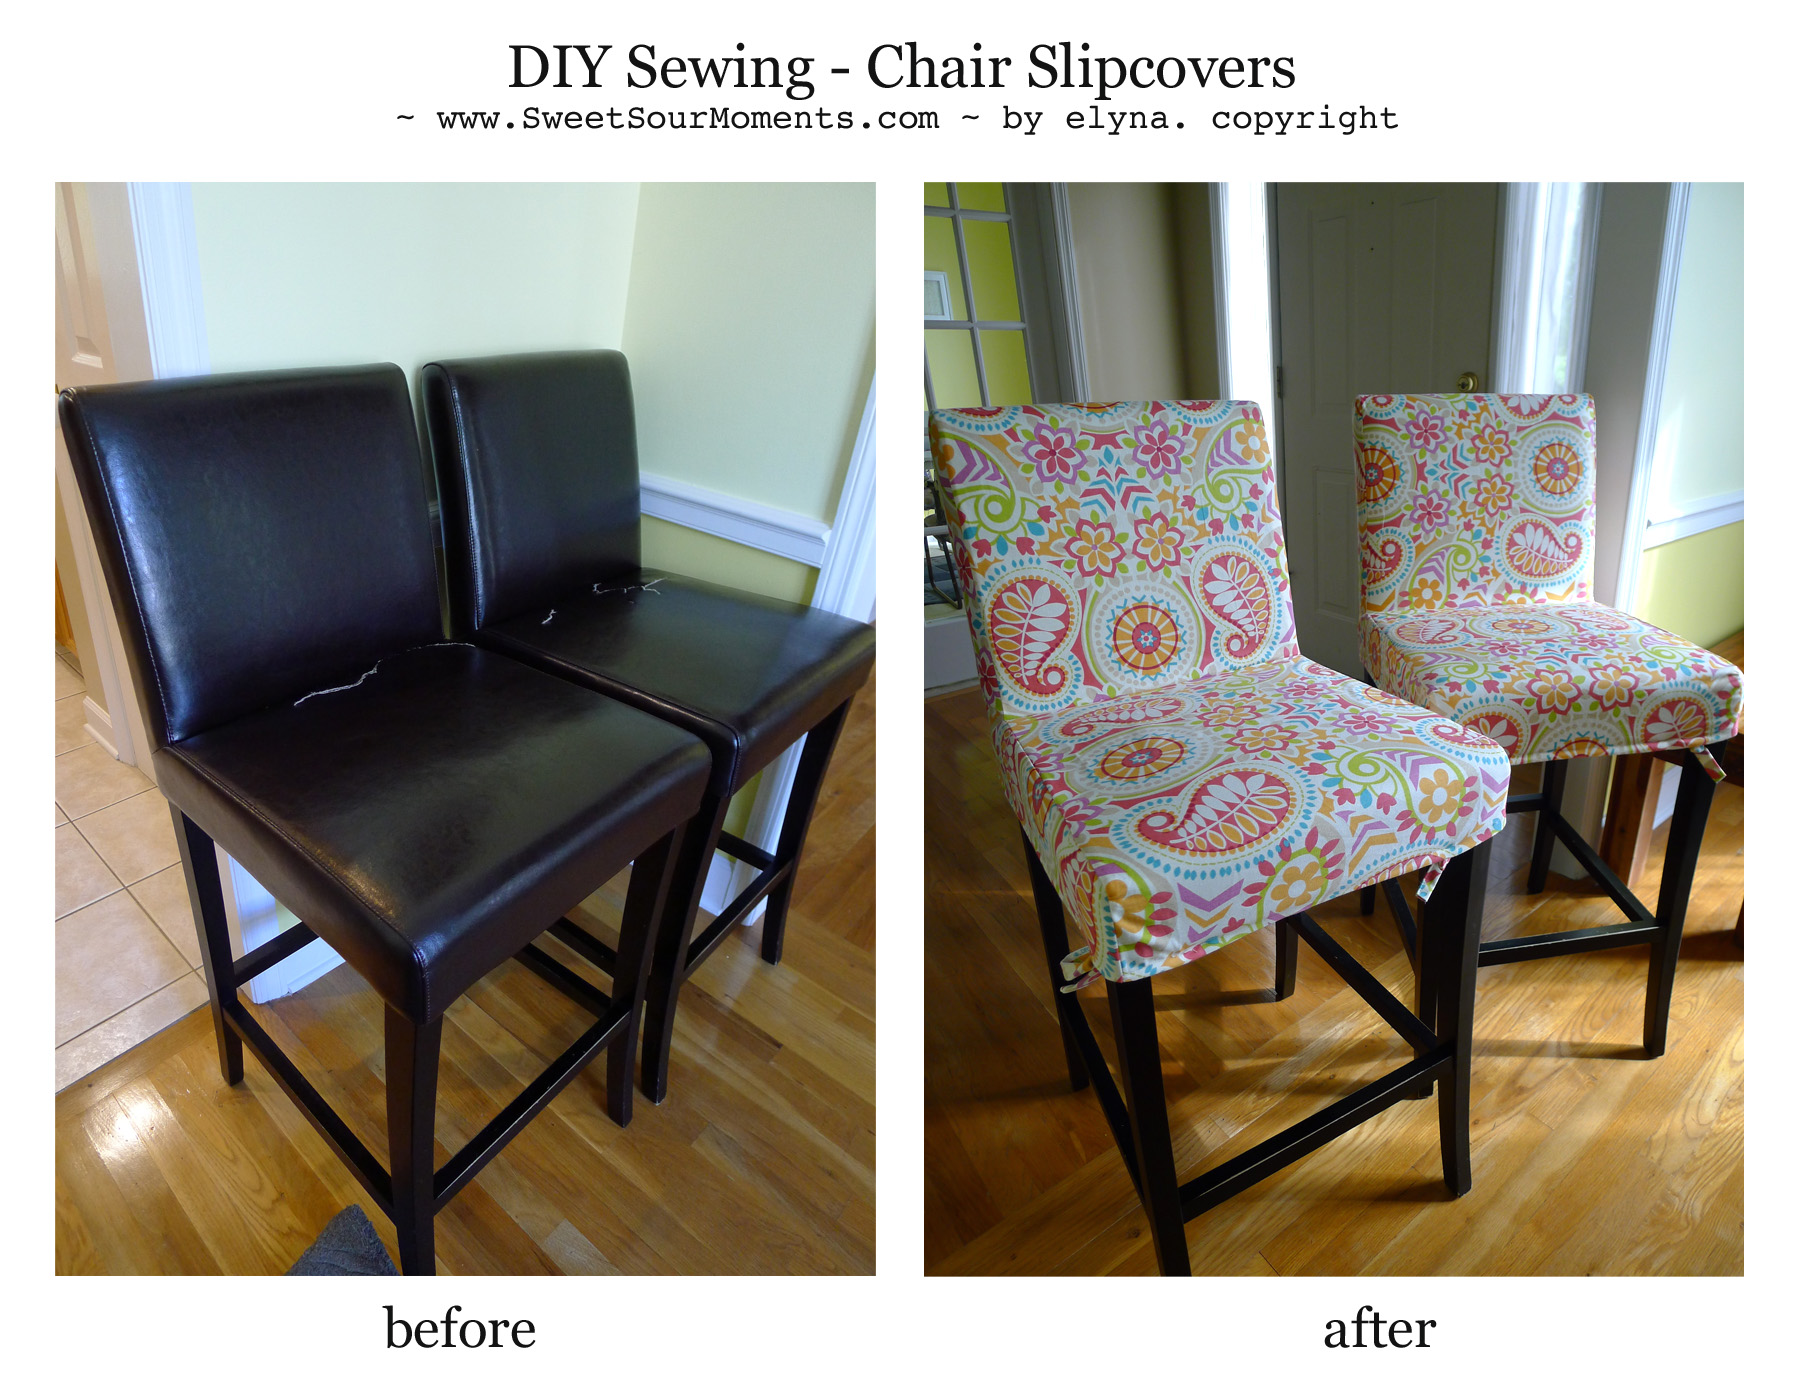 diy sewing chair slipcovers sweetsourmoments diy sewing chair slipcovers